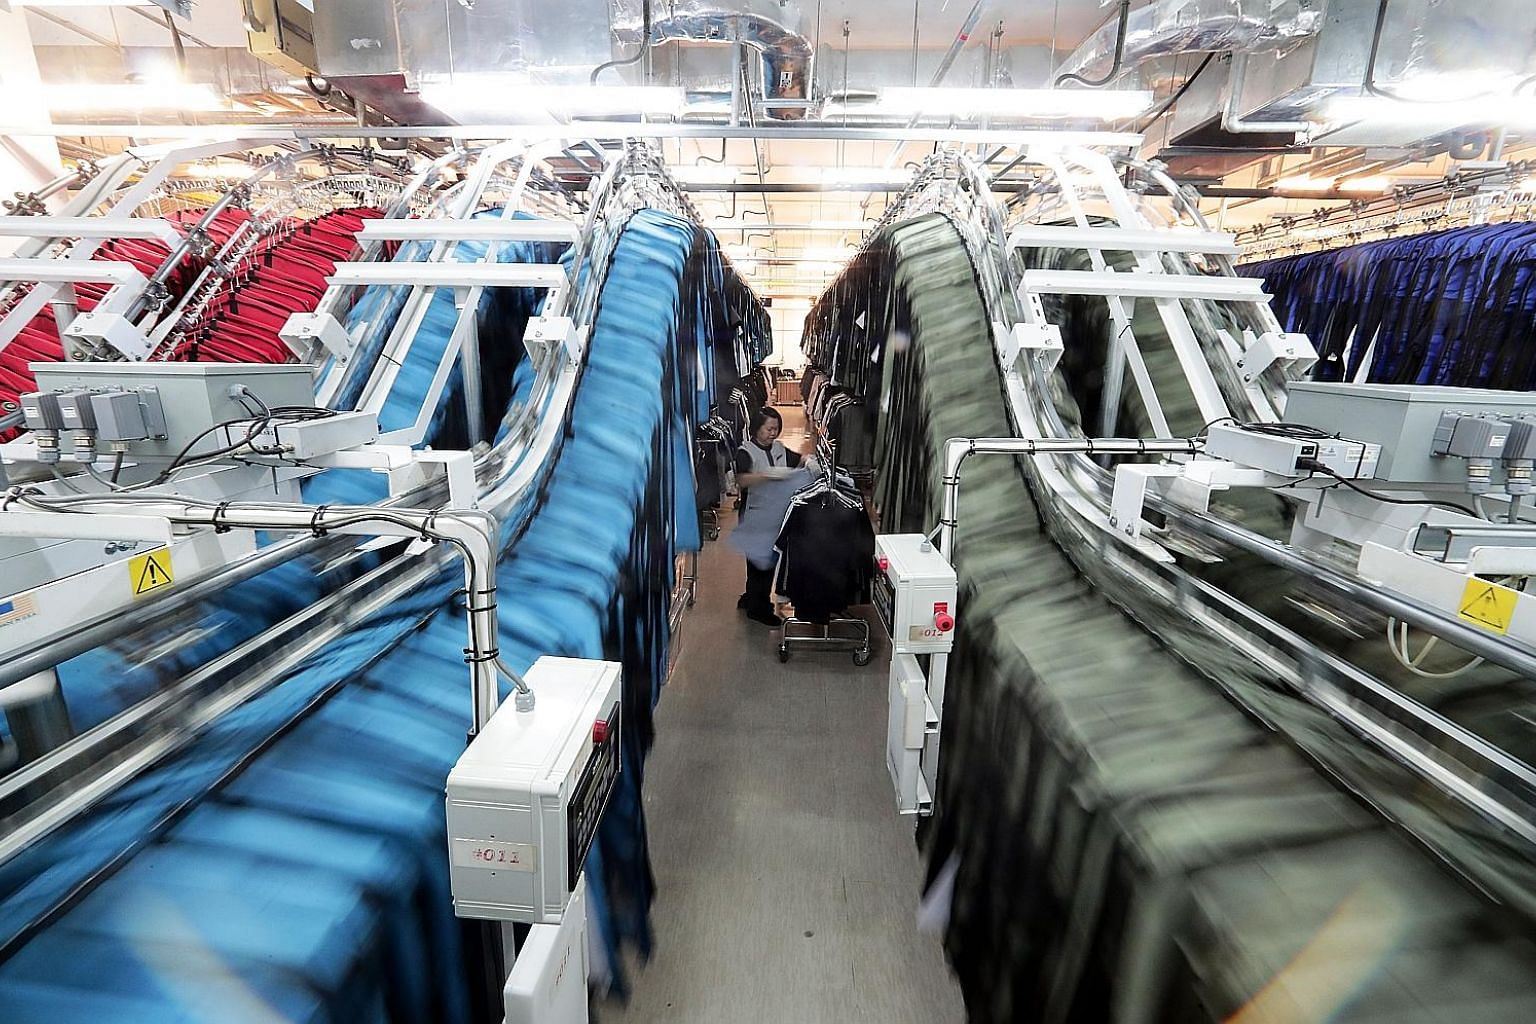 Staff uniforms being loaded onto conveyor belts in Marina Bay Sands' wardrobe room. Some 160,000 uniforms, which can be tracked with sewn-in radio frequency identification tags, are identified and collected by staff in half a minute, with just a swip